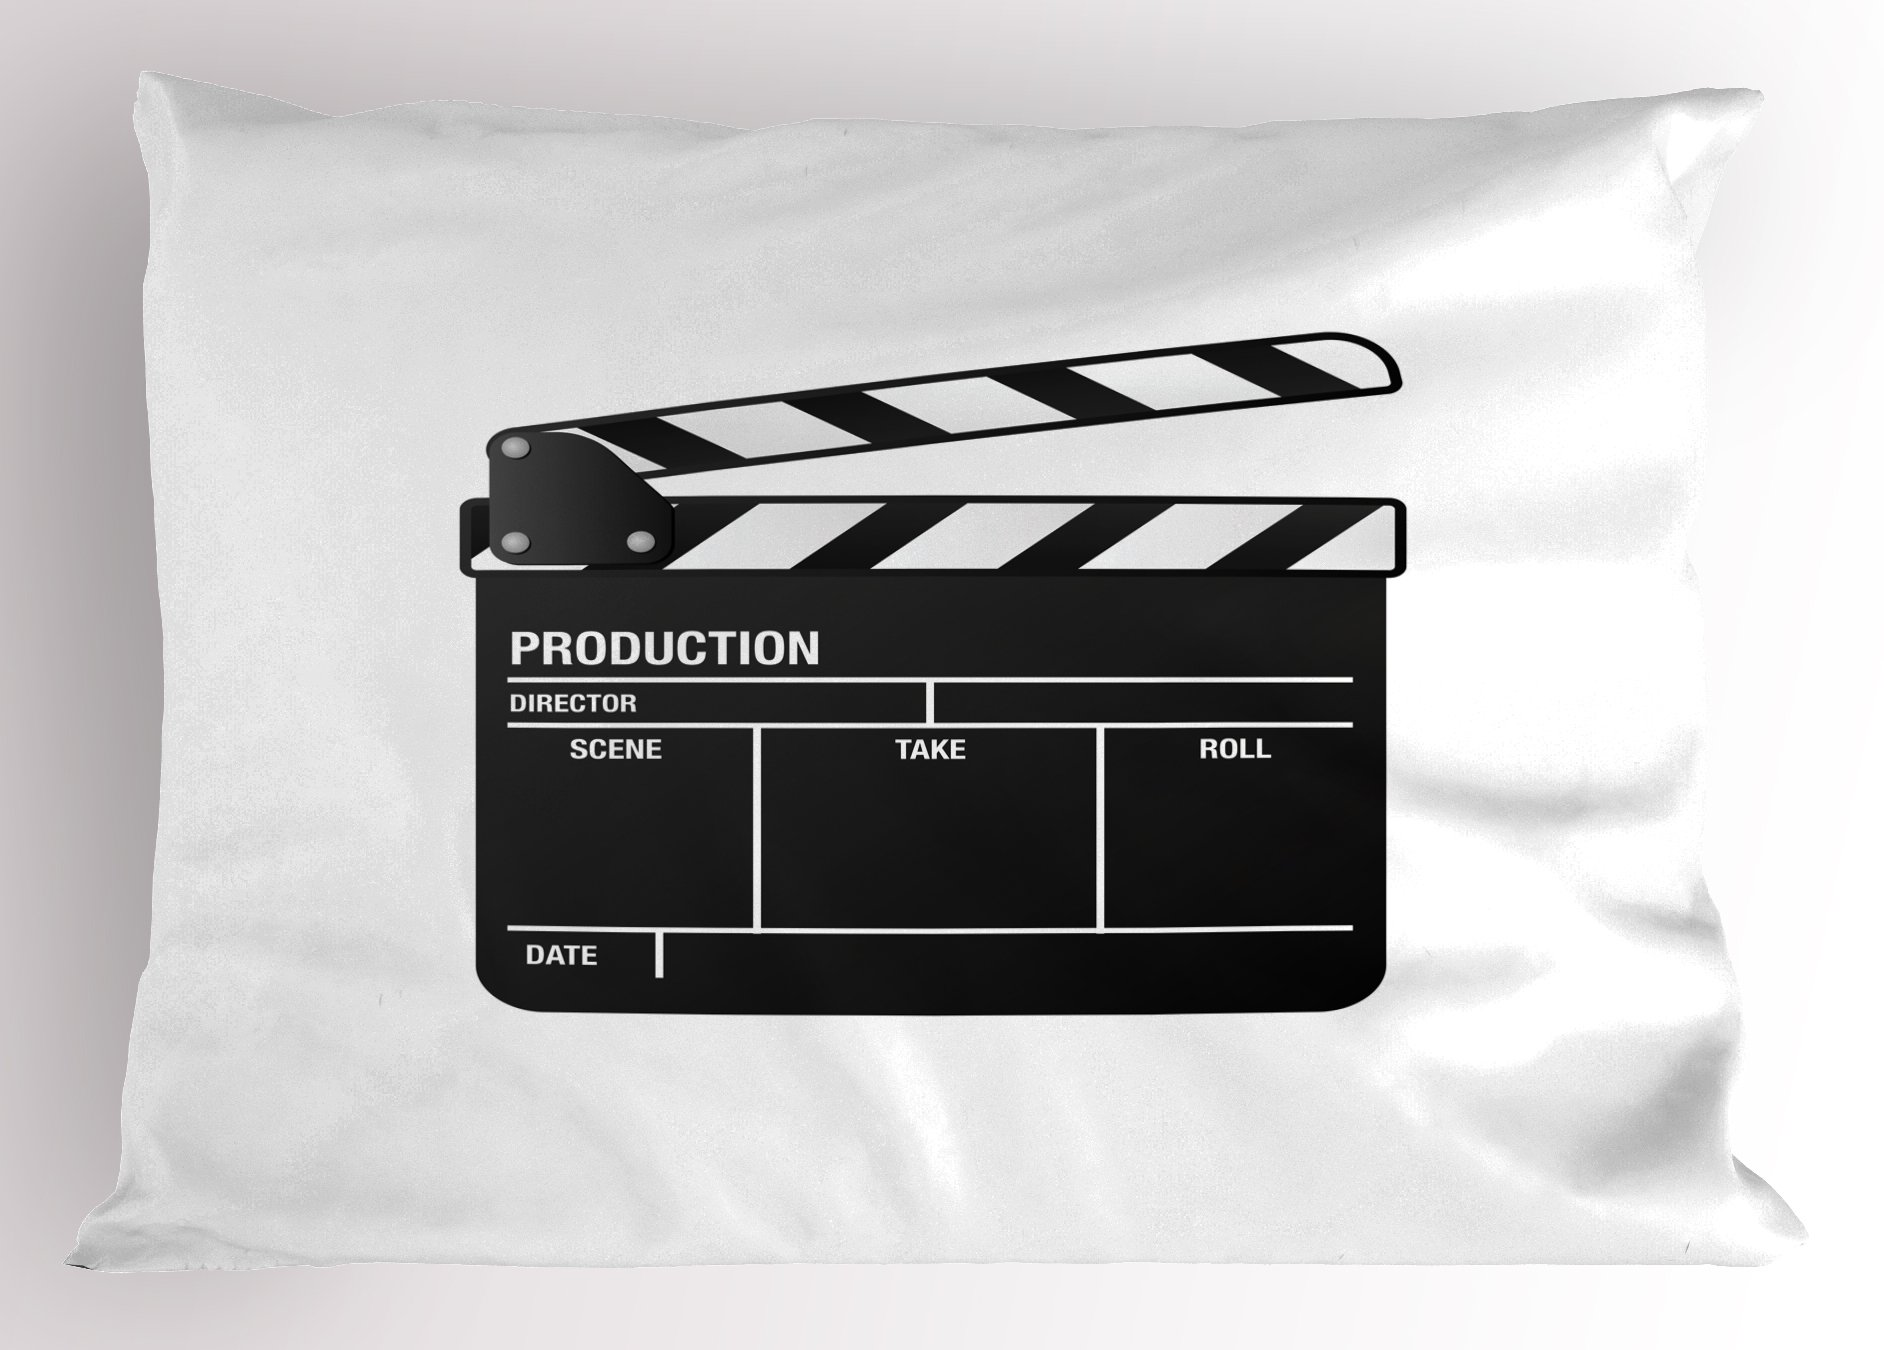 Ambesonne Movie Theater Pillow Sham, Realistic Illustration of a Clapper Board Symbol for Film and Video Industry, Decorative Standard Queen Size Printed Pillowcase, 30 X 20 inches, Black White